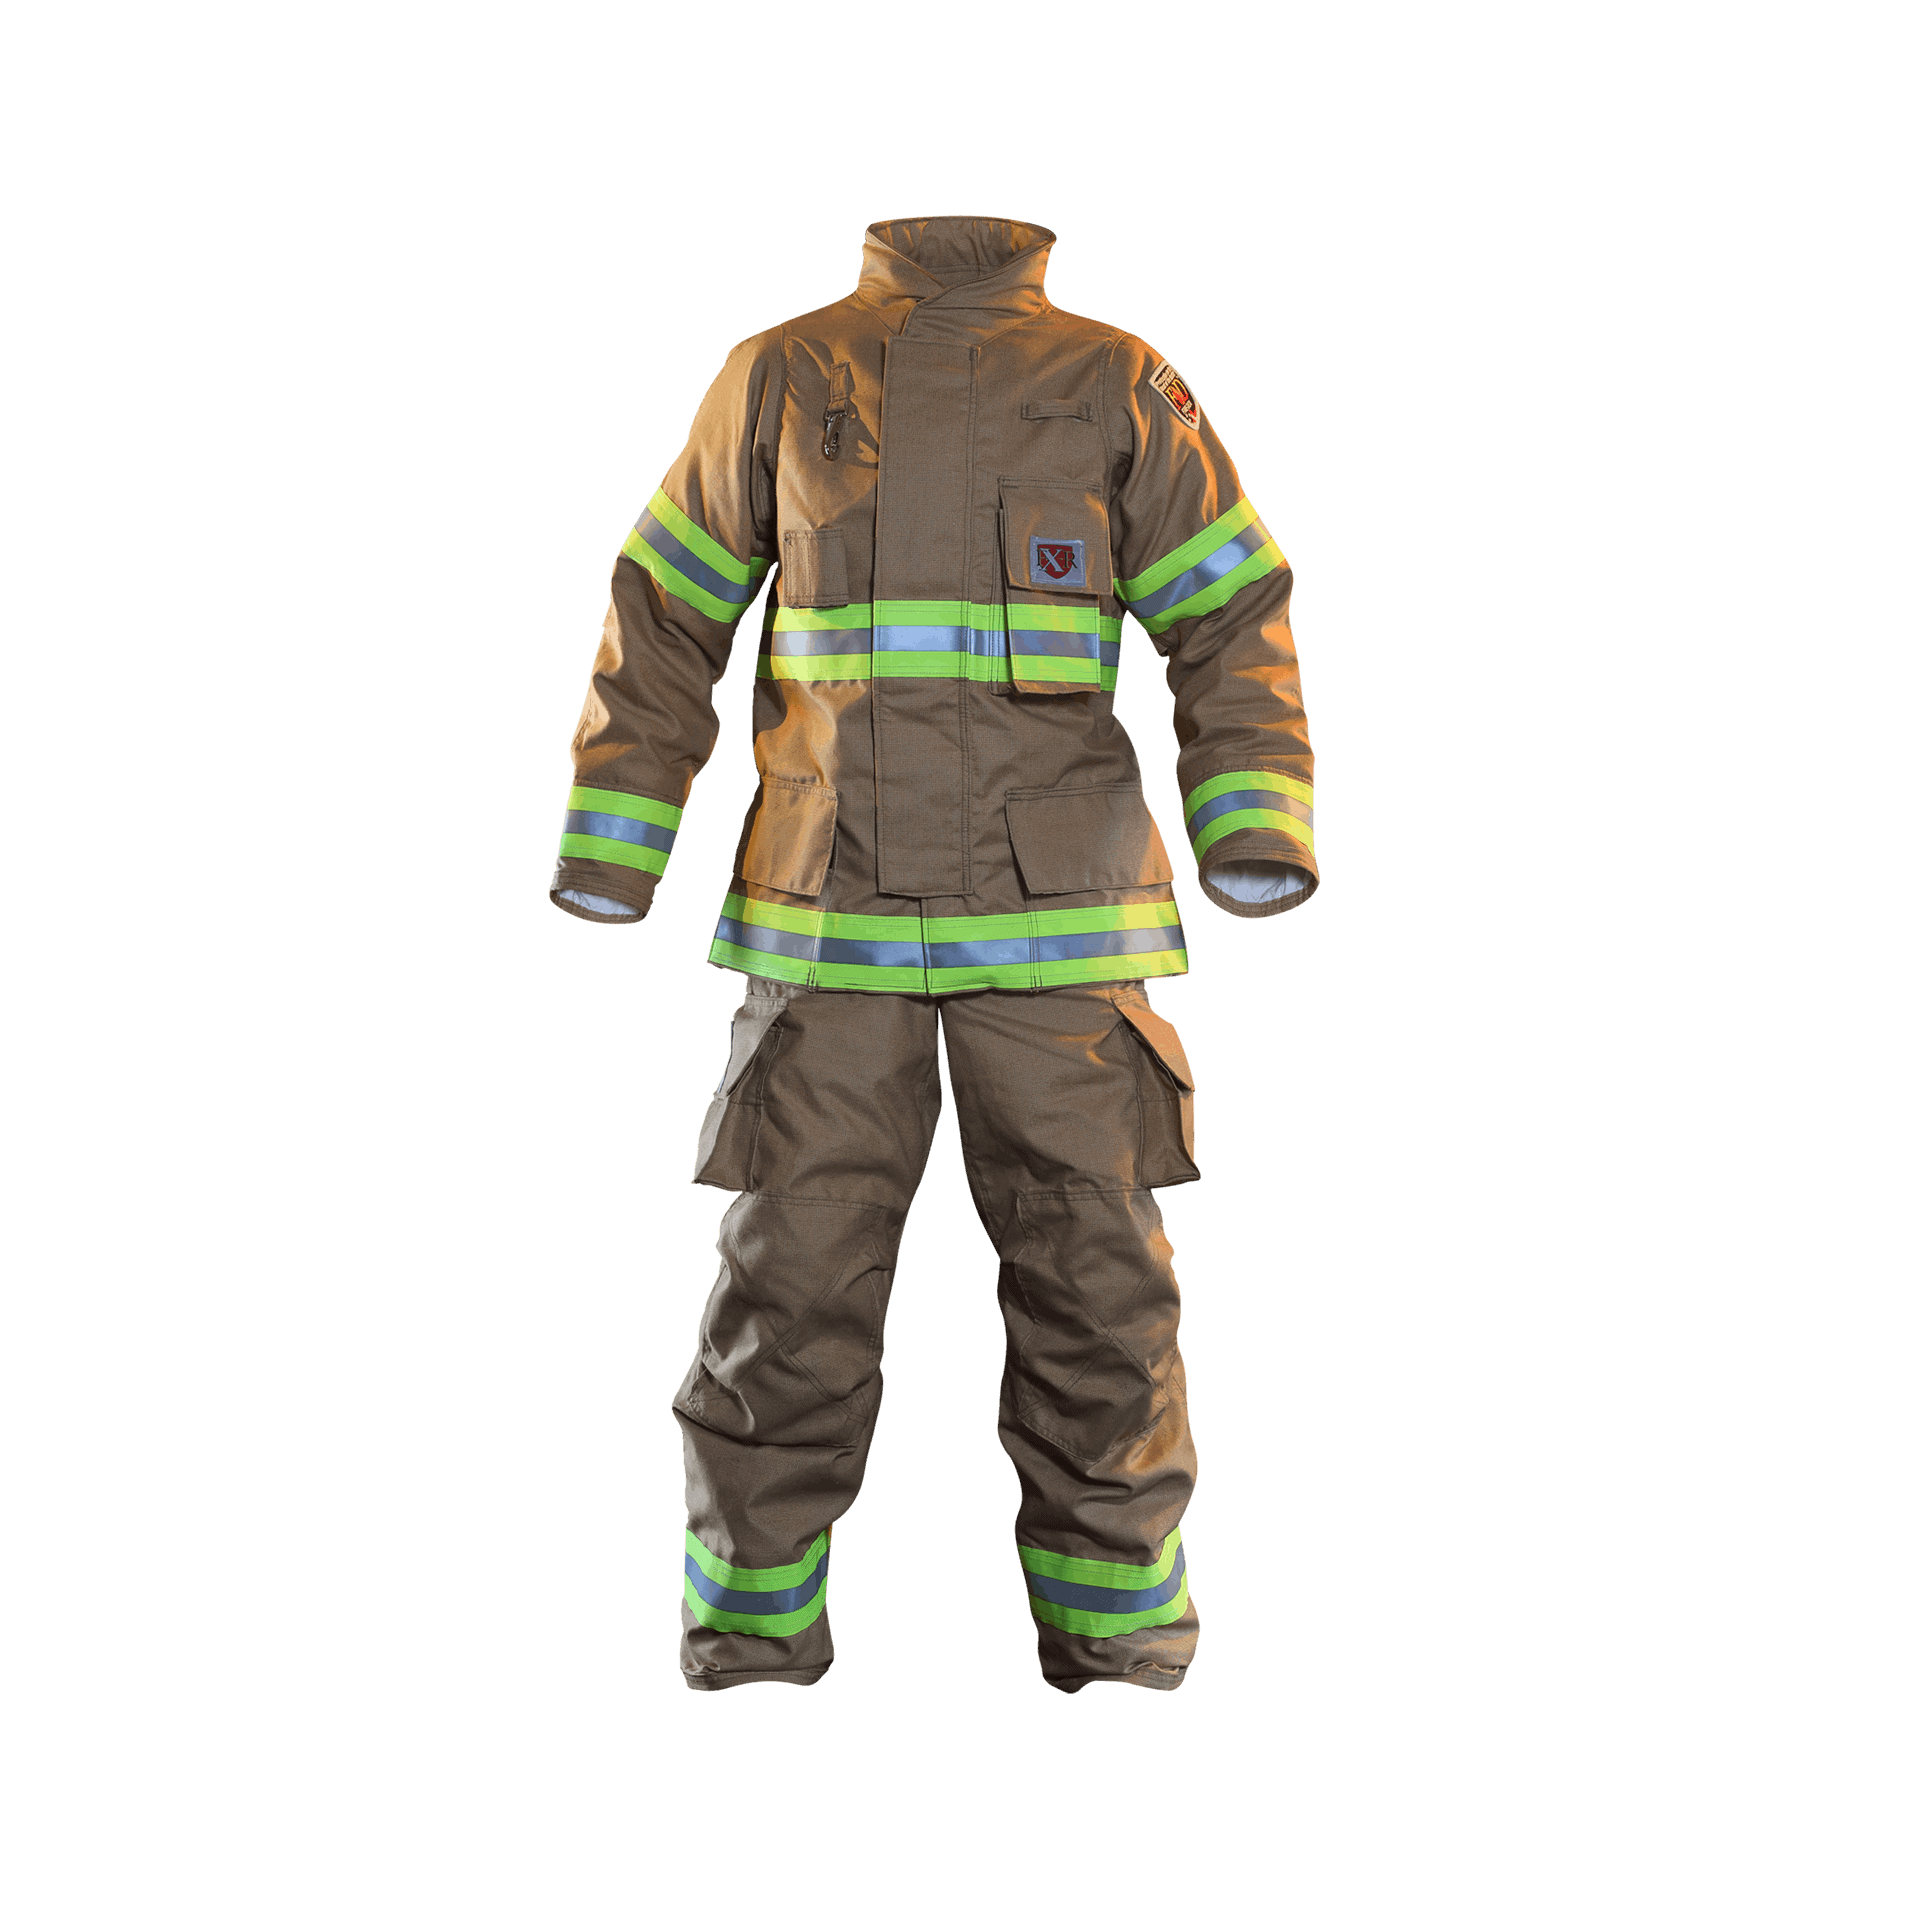 FXR Turnout Gear Full Front View